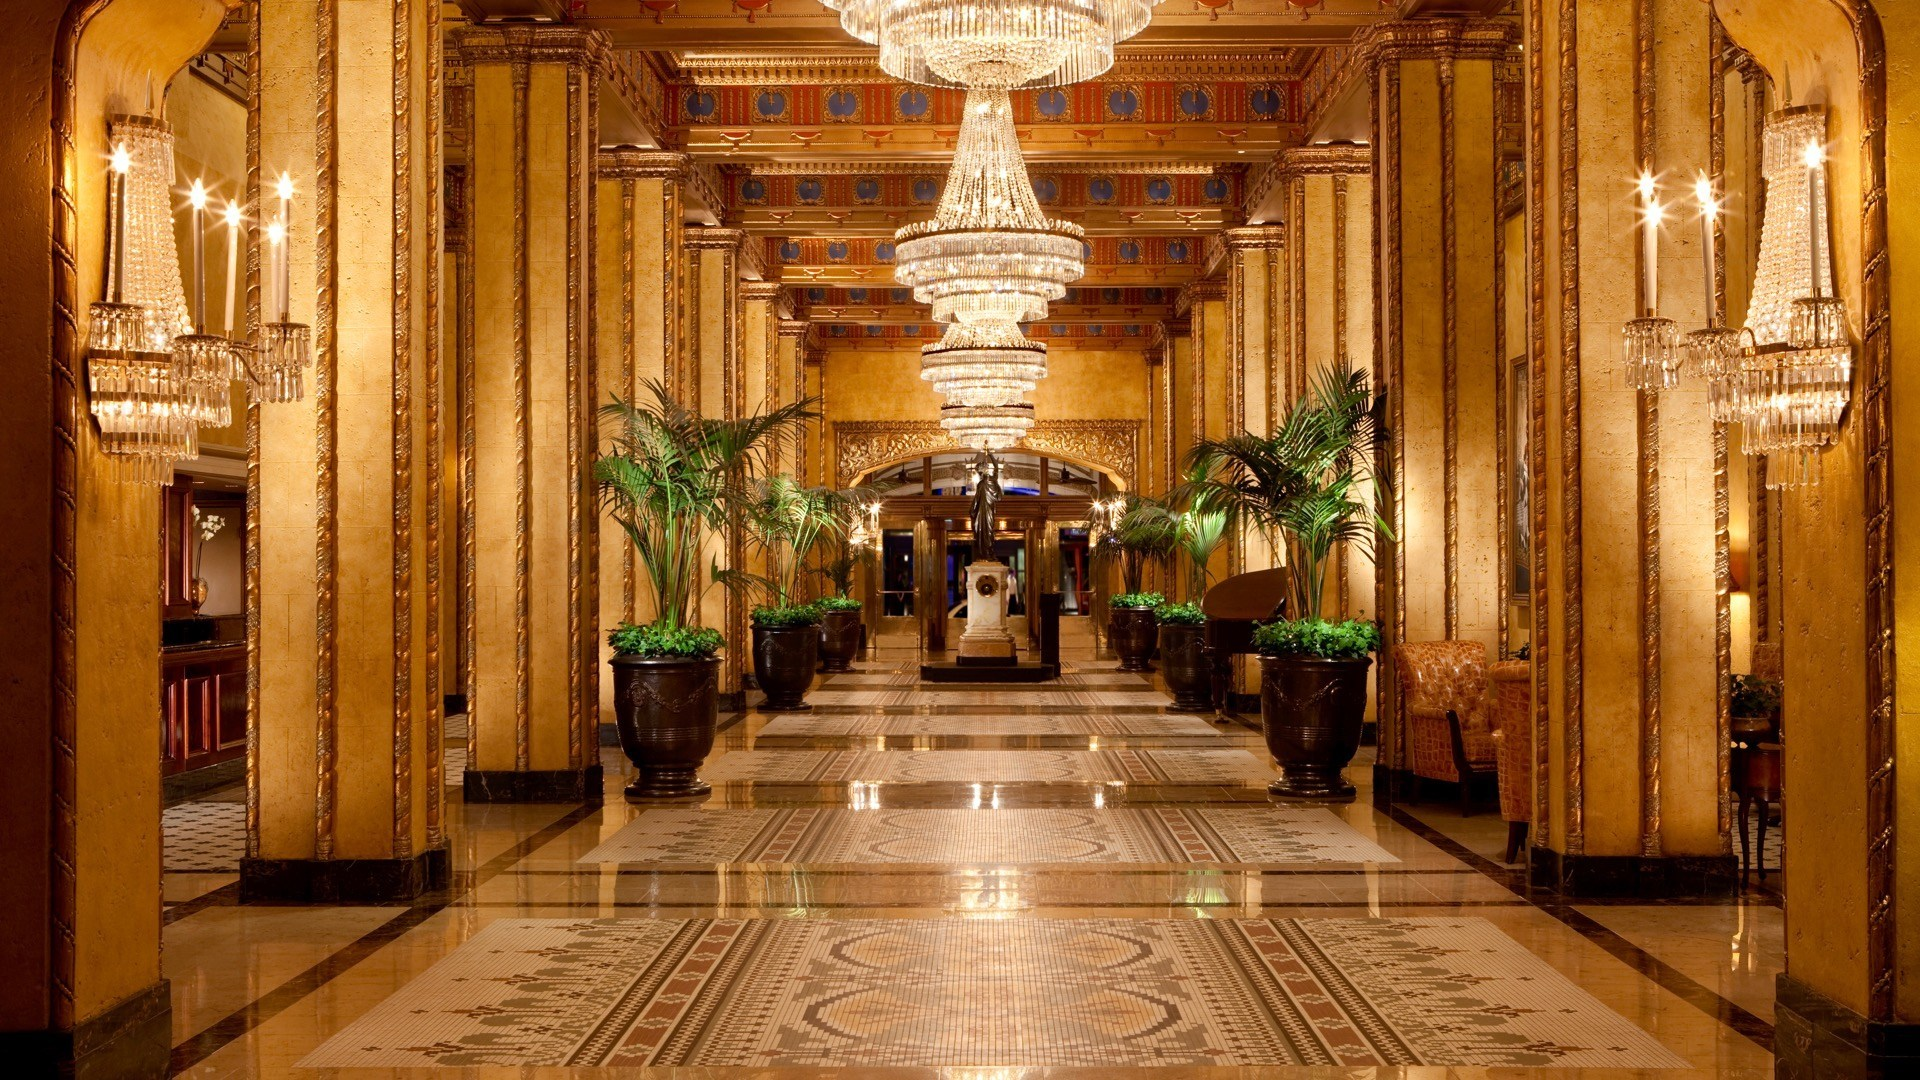 Waldorf-Astoria-Spa-at-The-Roosevelt-Hotel-Spas-of-America.jpg